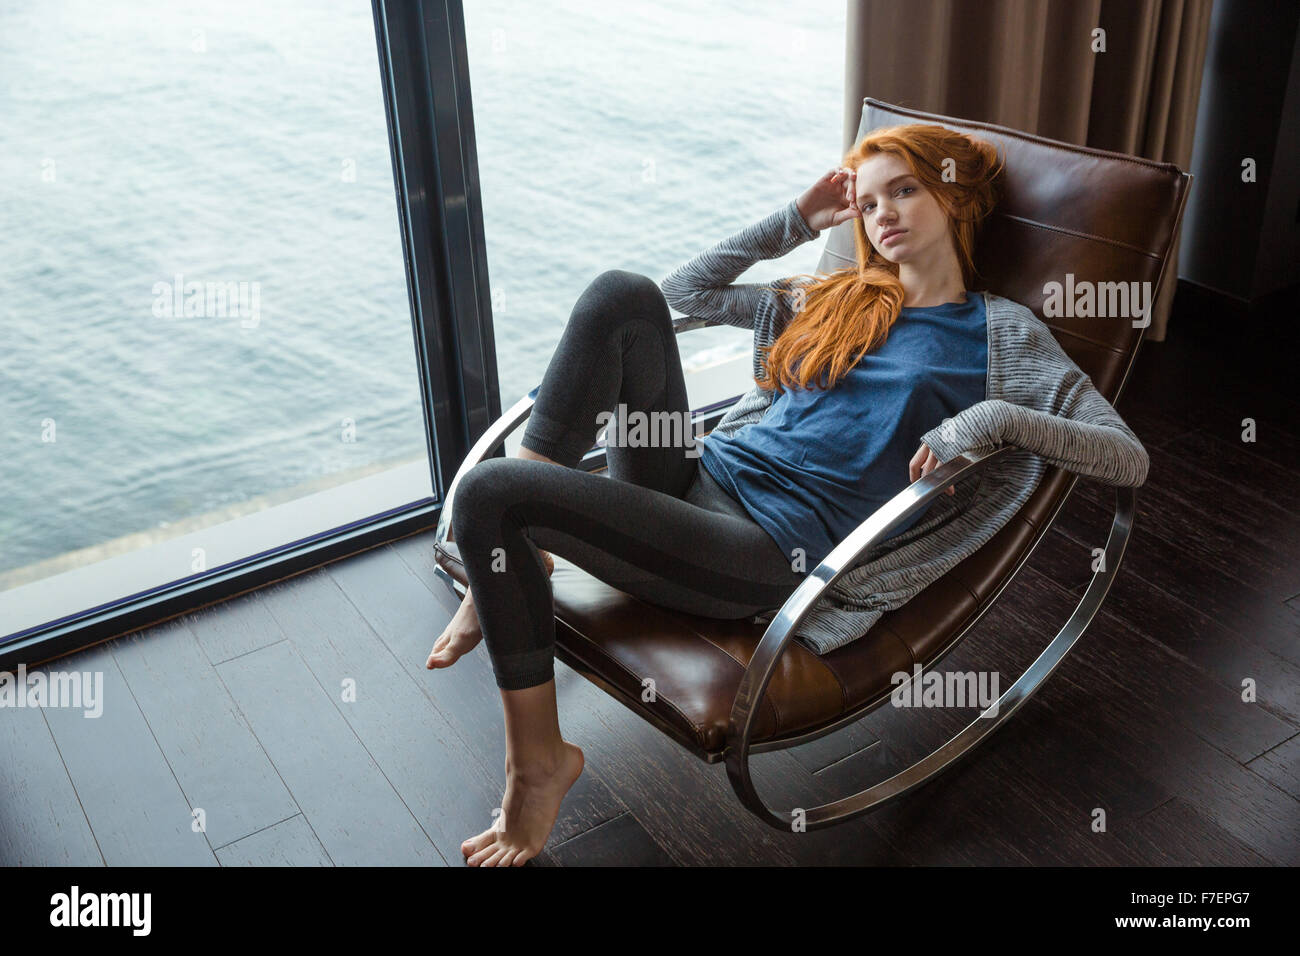 Portrait of a young redhead woman relaxing on rocking chair with sea view from the window Stock Photo